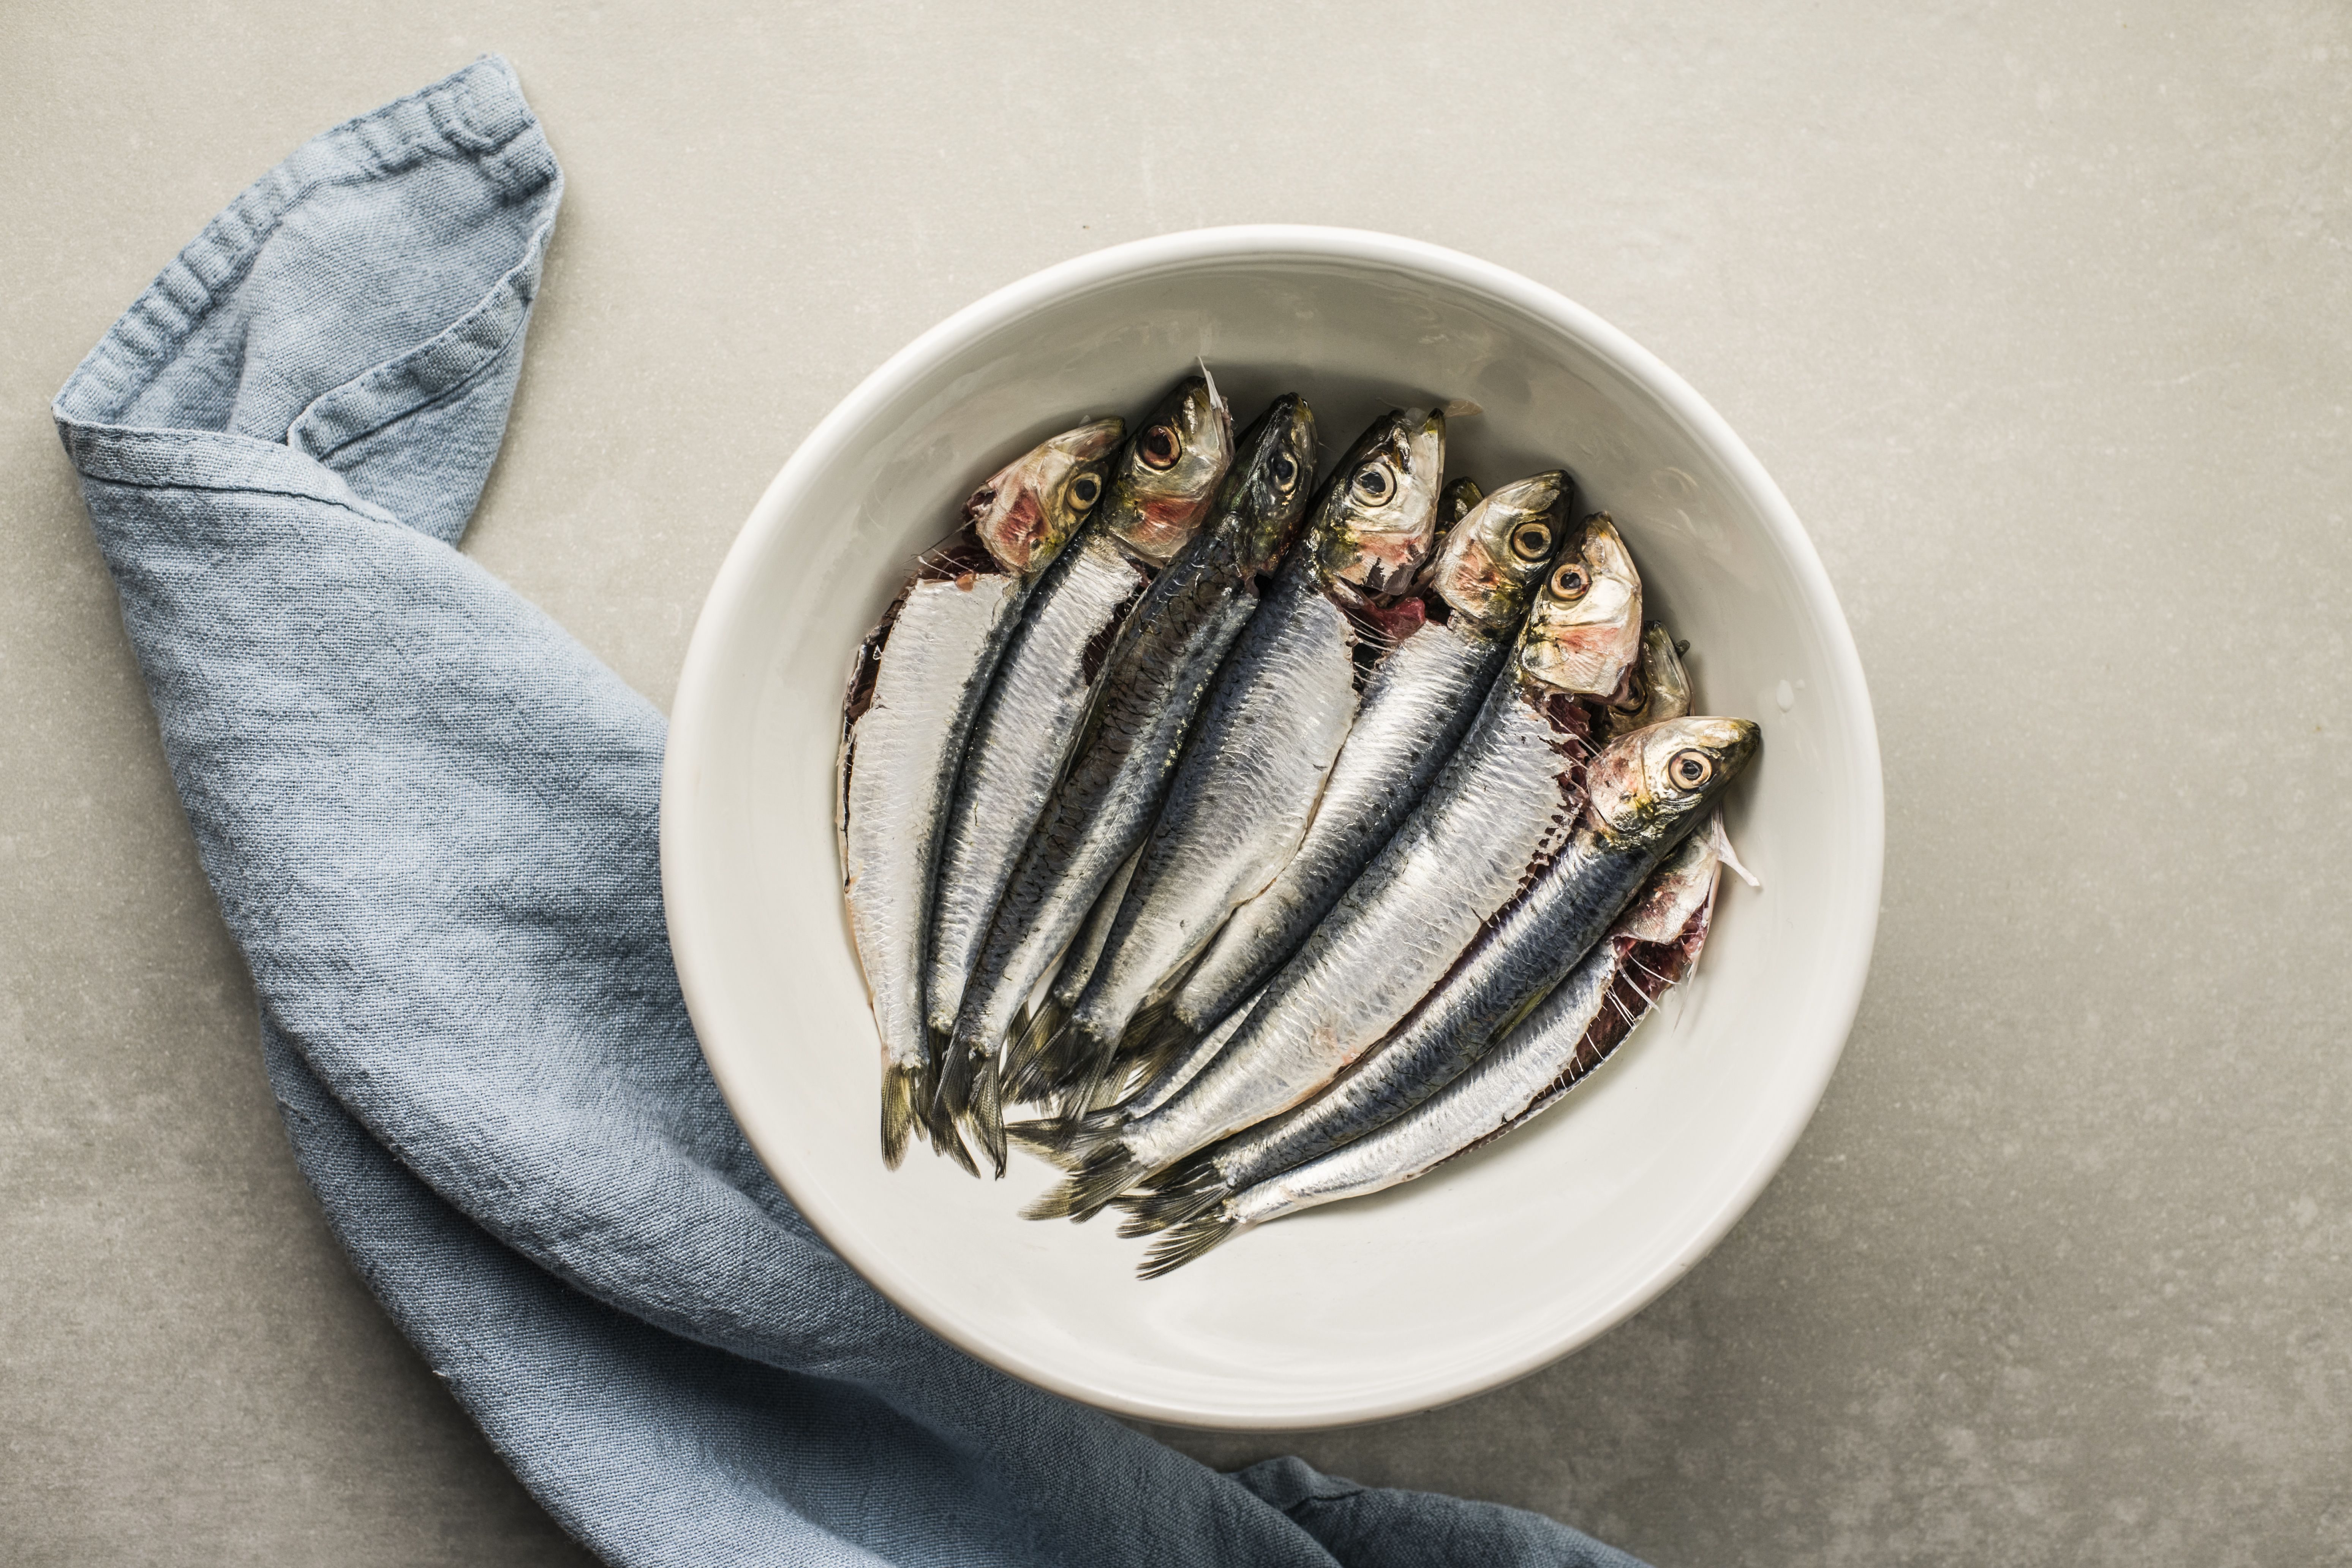 Sardines in a bowl